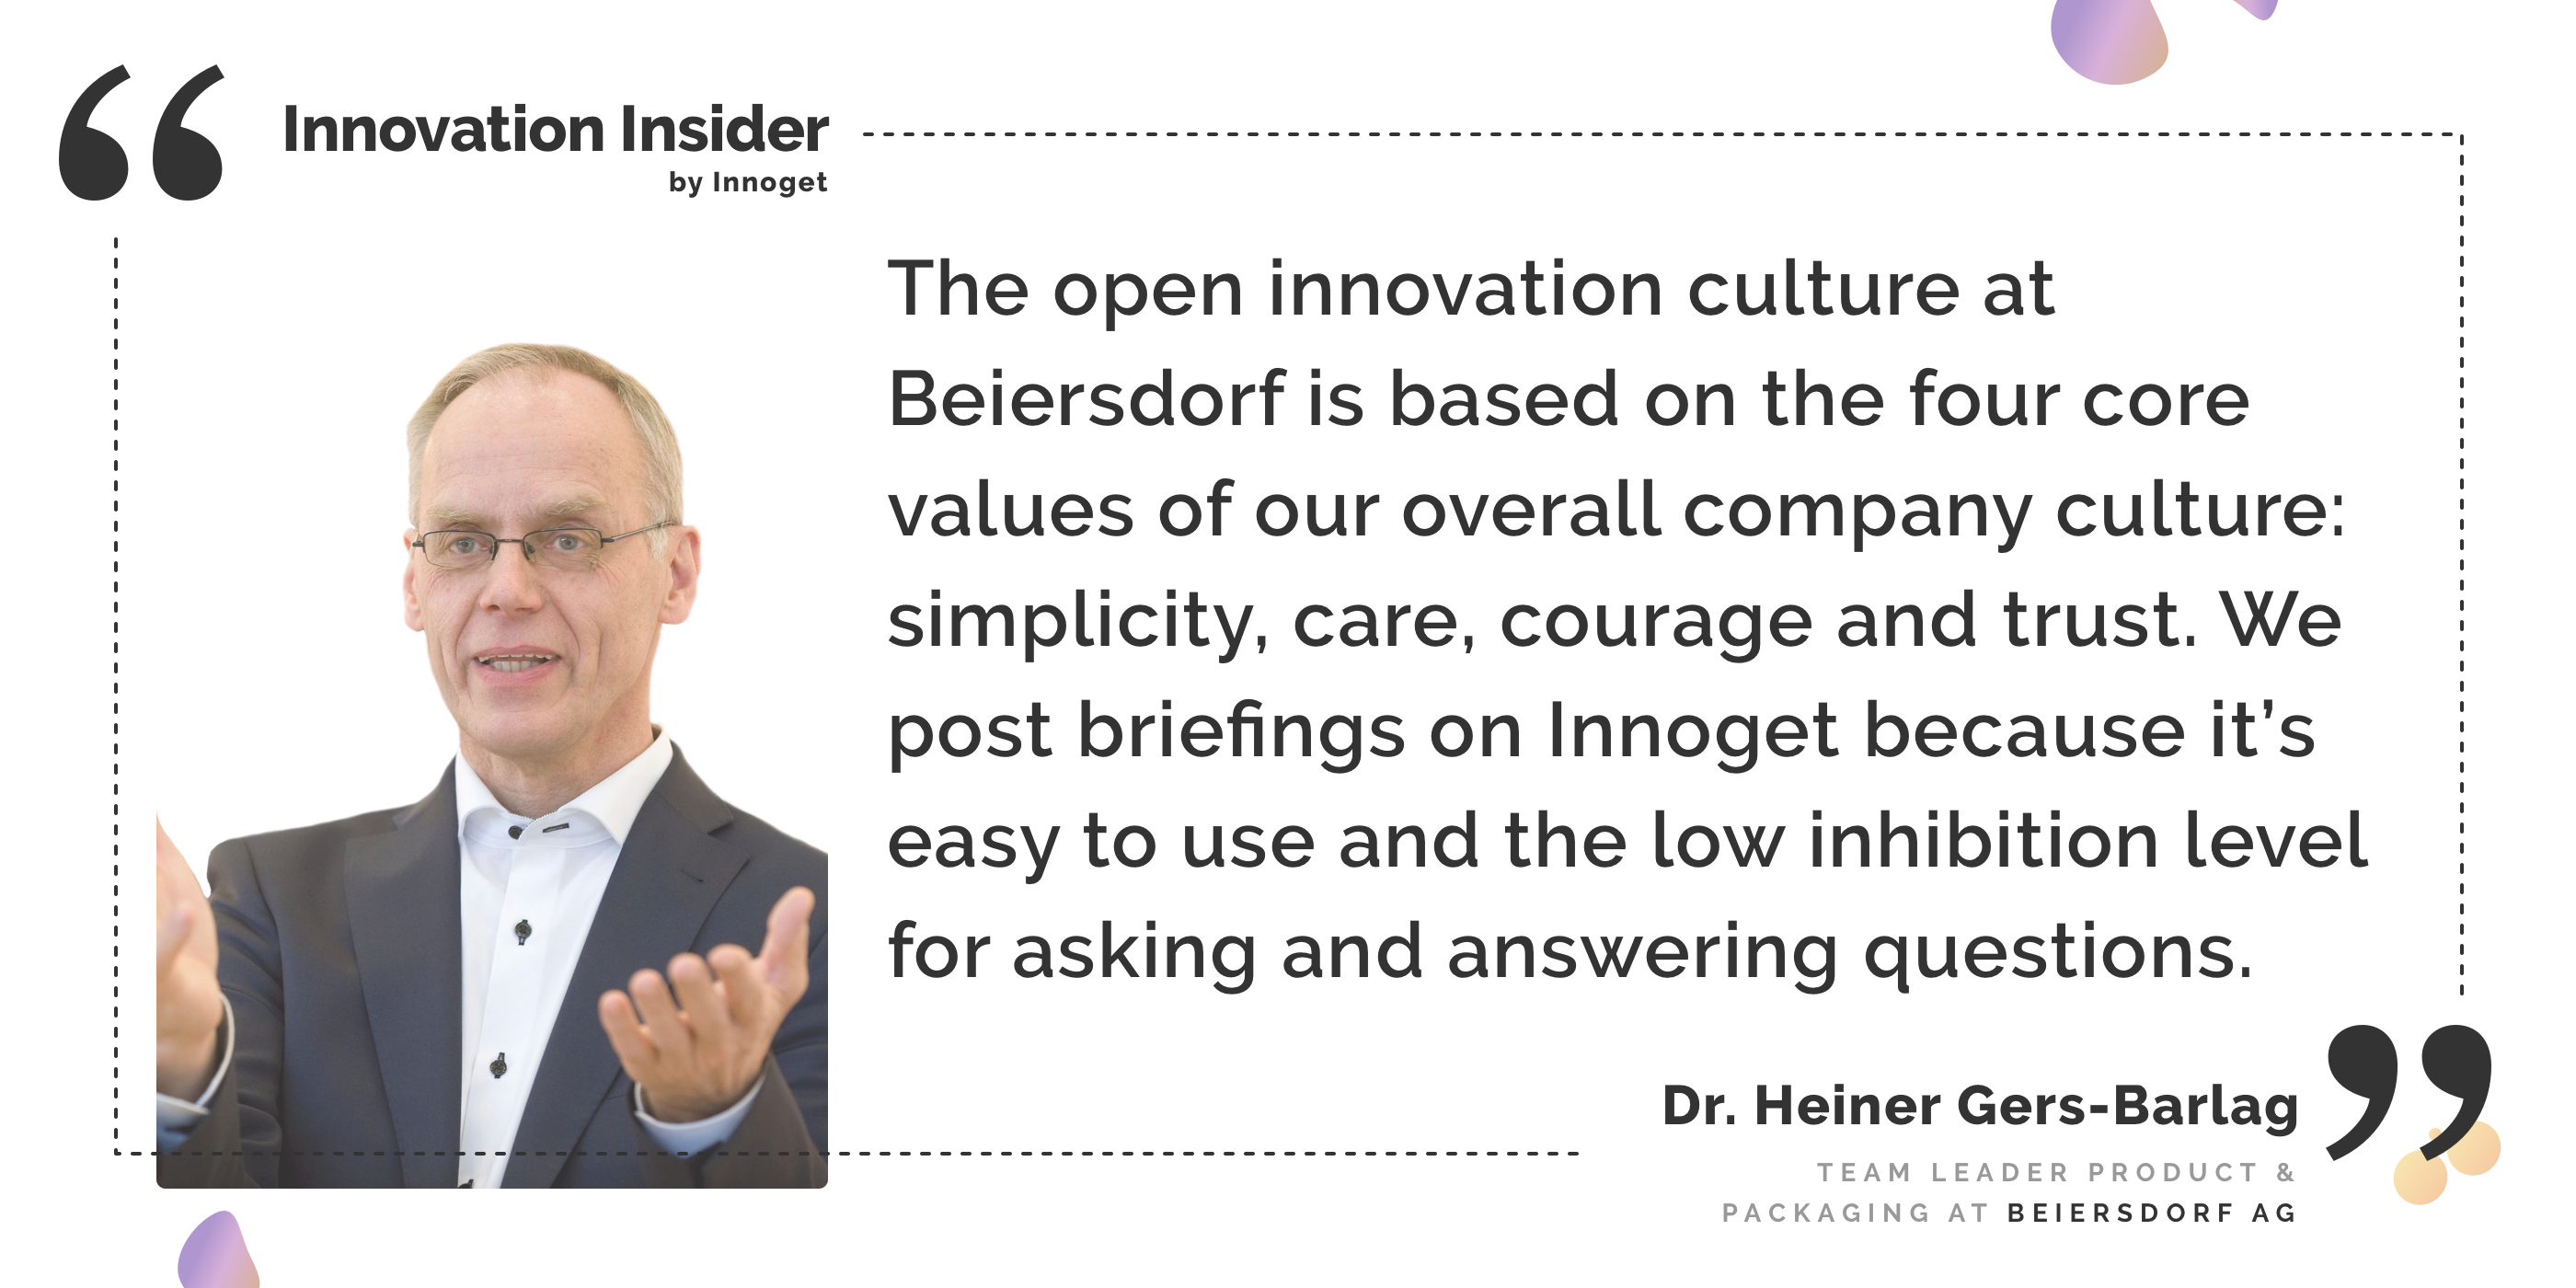 Innovation Insider: Talking with Dr. Heiner Gers-Barlag, Team Leader Product & Packaging Scouting at Beiersdorf AG